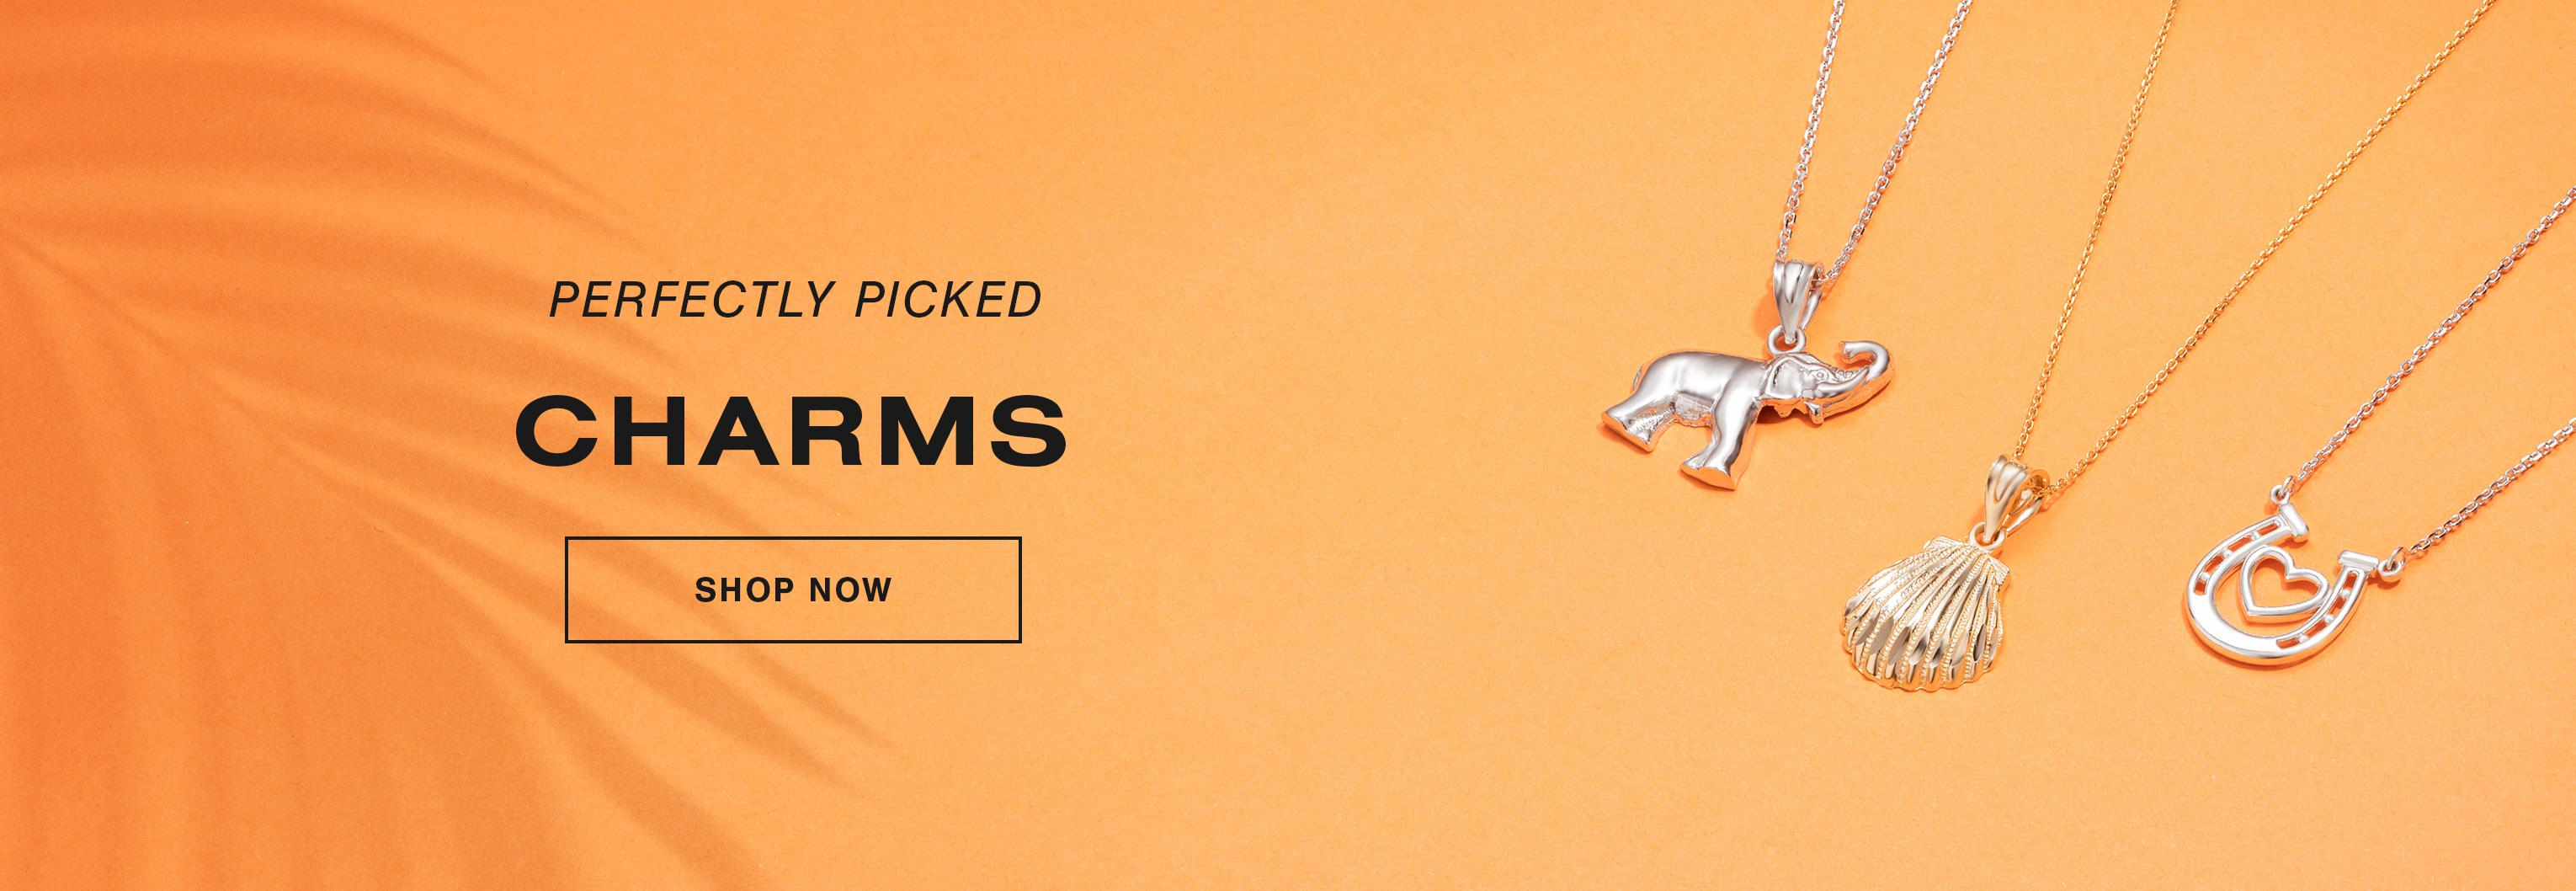 Charms - Shop Now